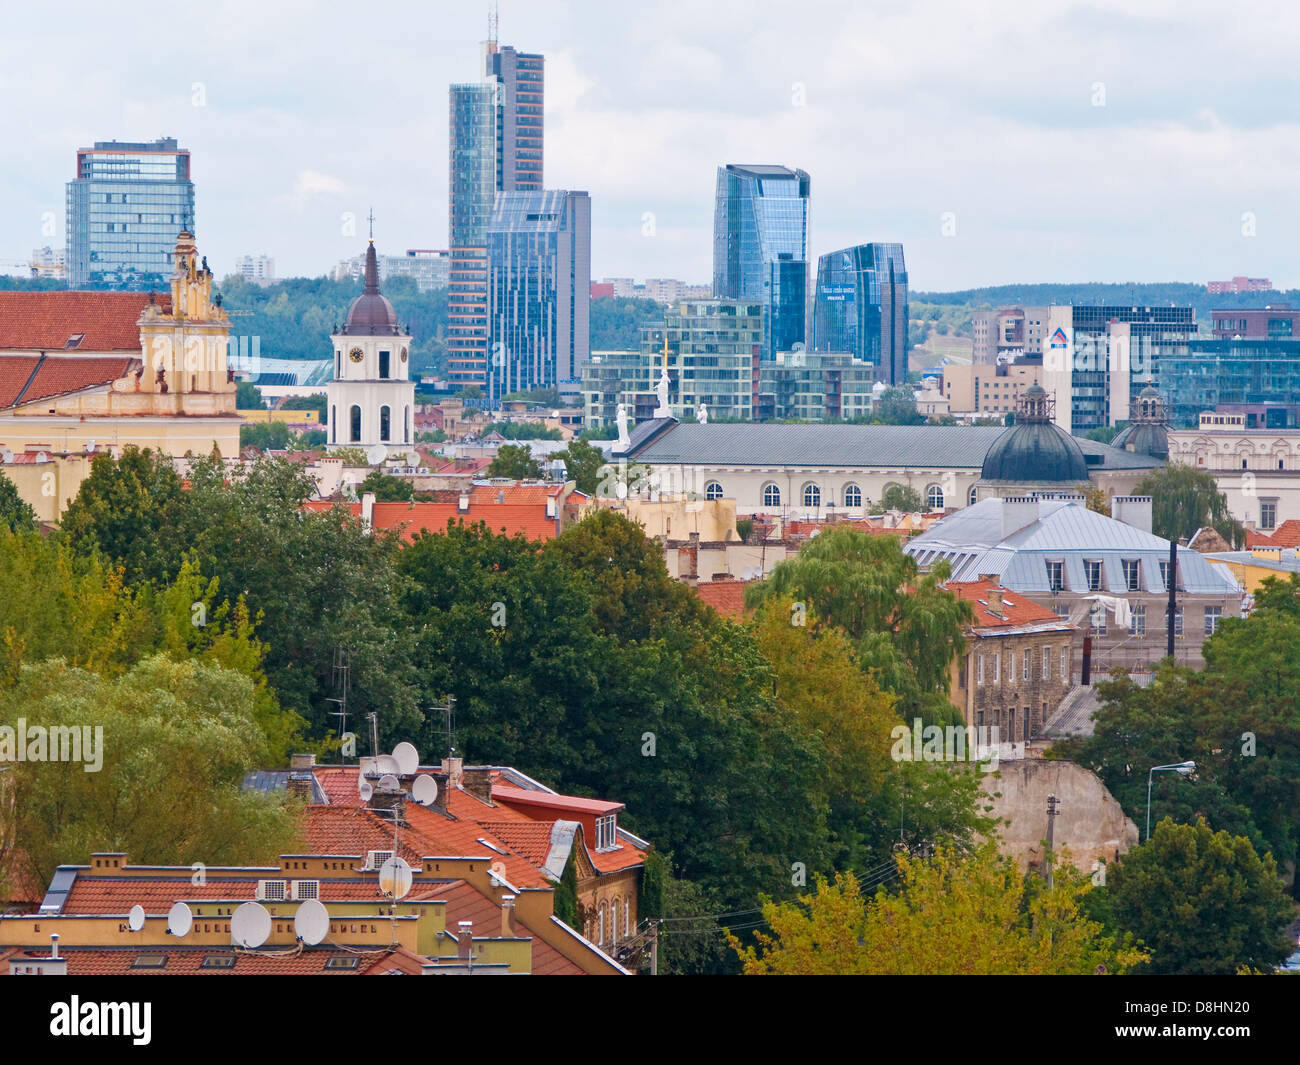 Baltic States, Lithuania, Vilnius, elevated view of the new city skyline - Stock Image